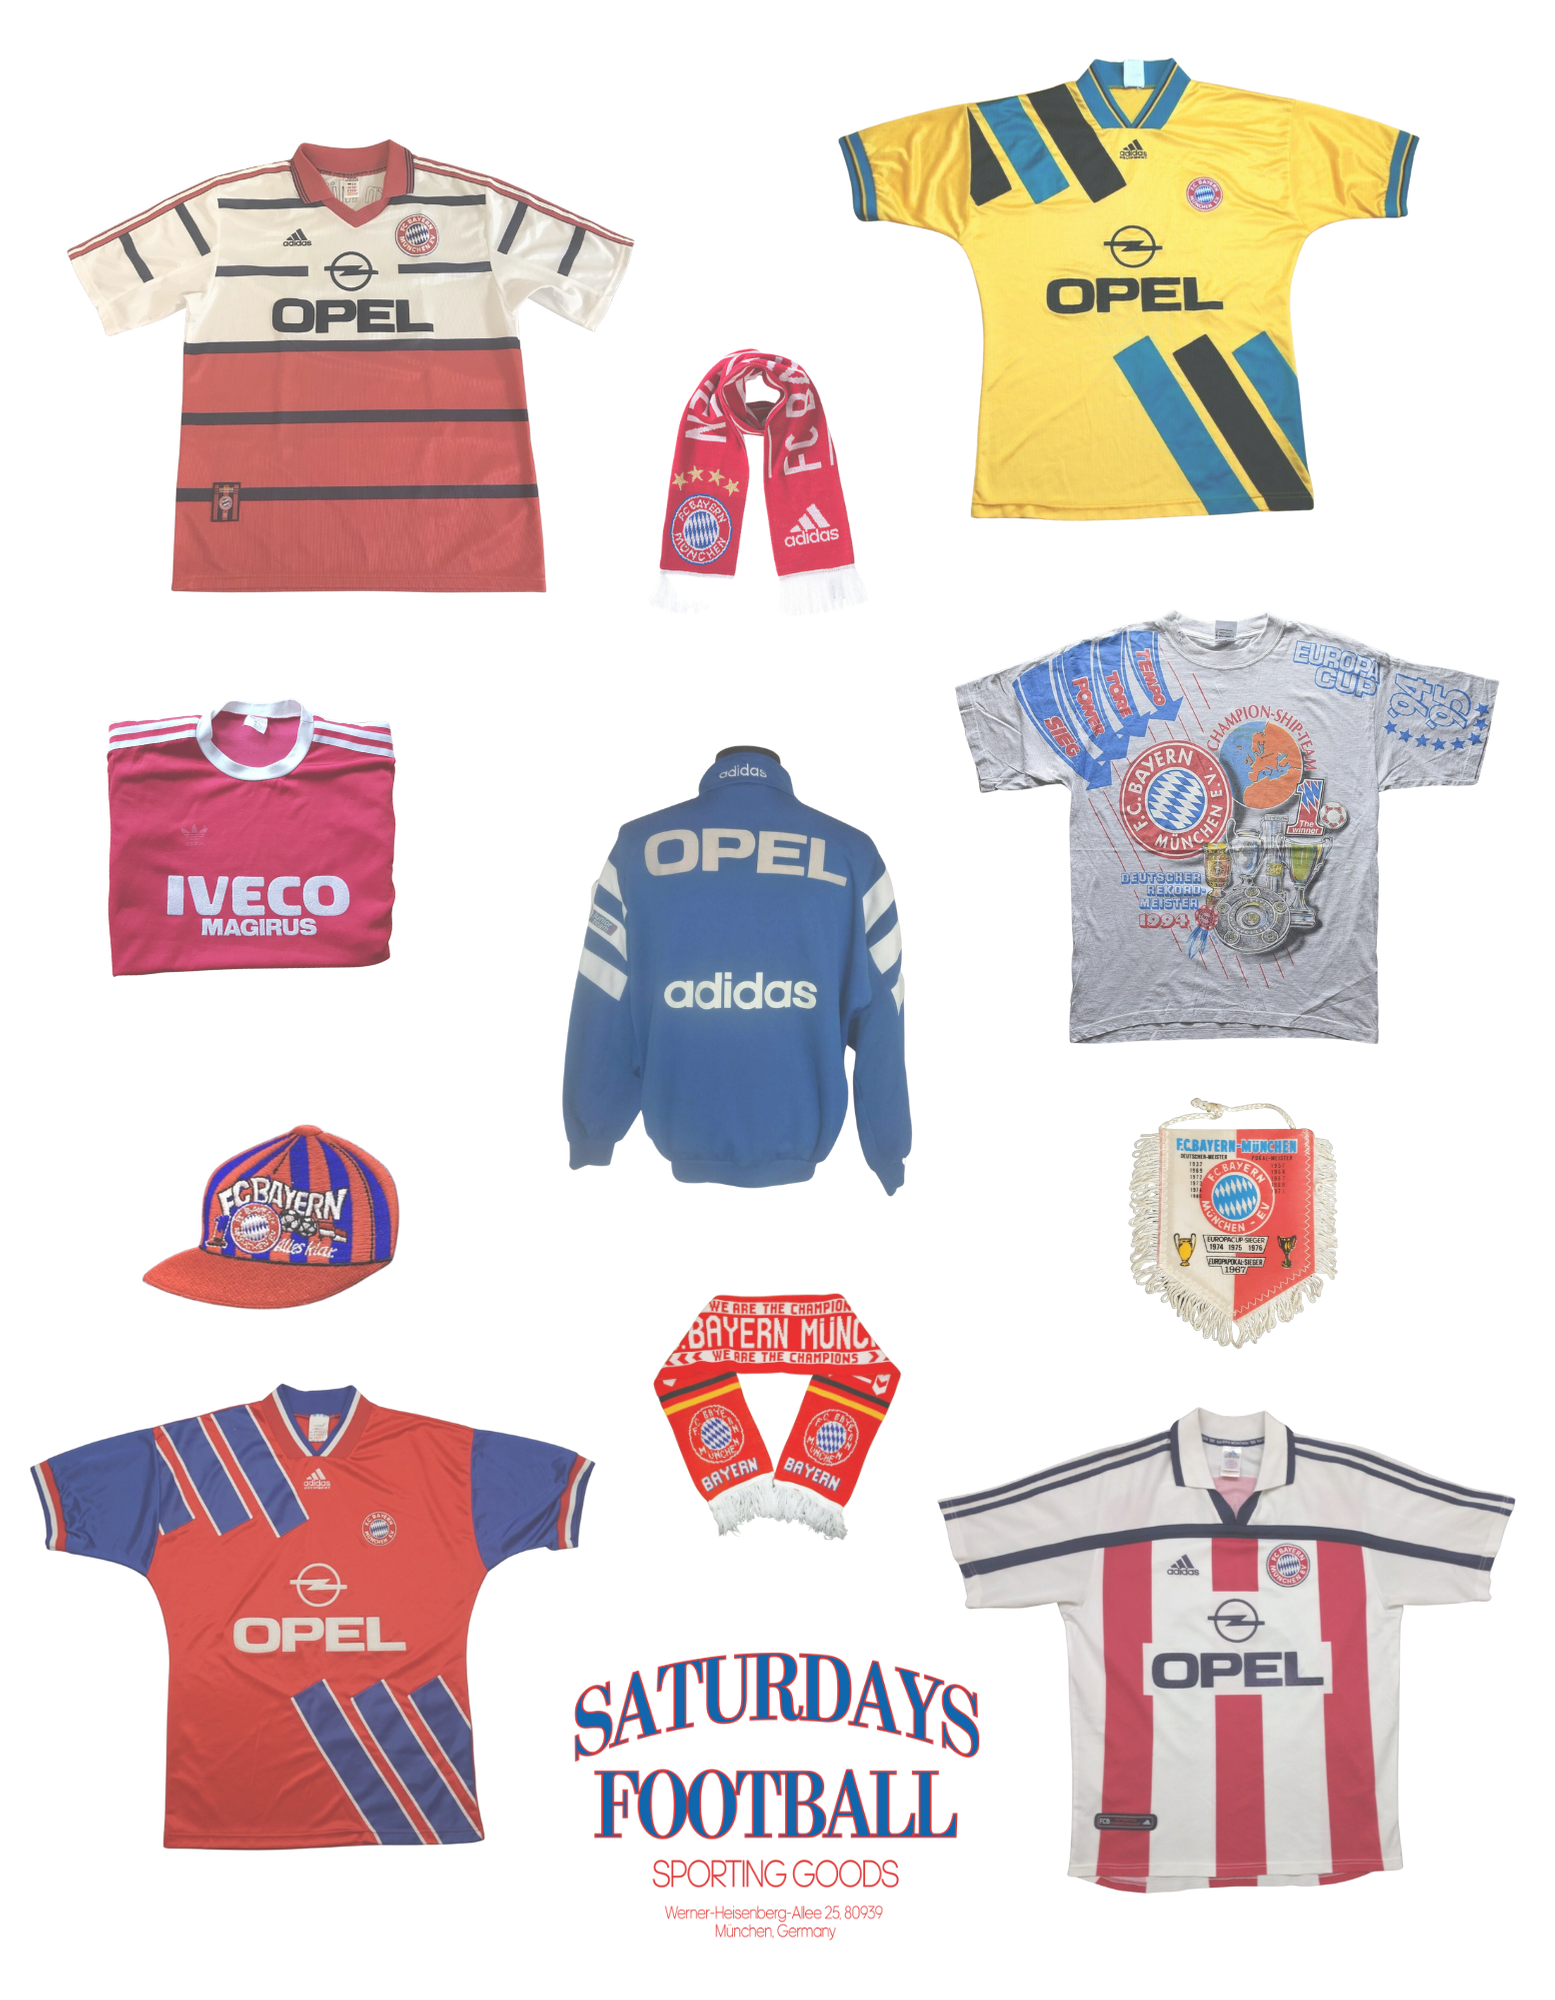 Saturdays Football Sporting Goods Munich